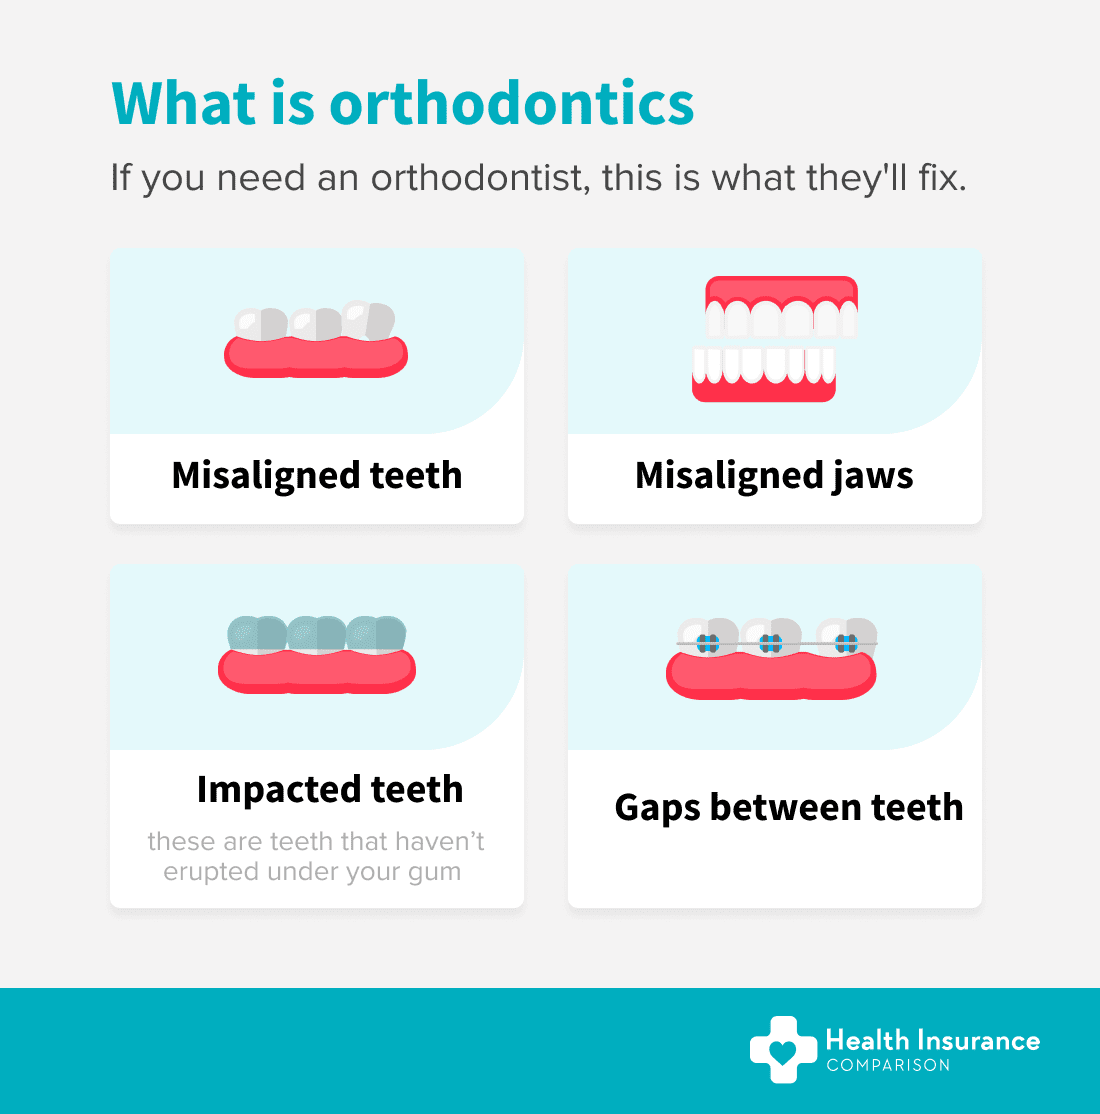 A guide to orthodontic treatment